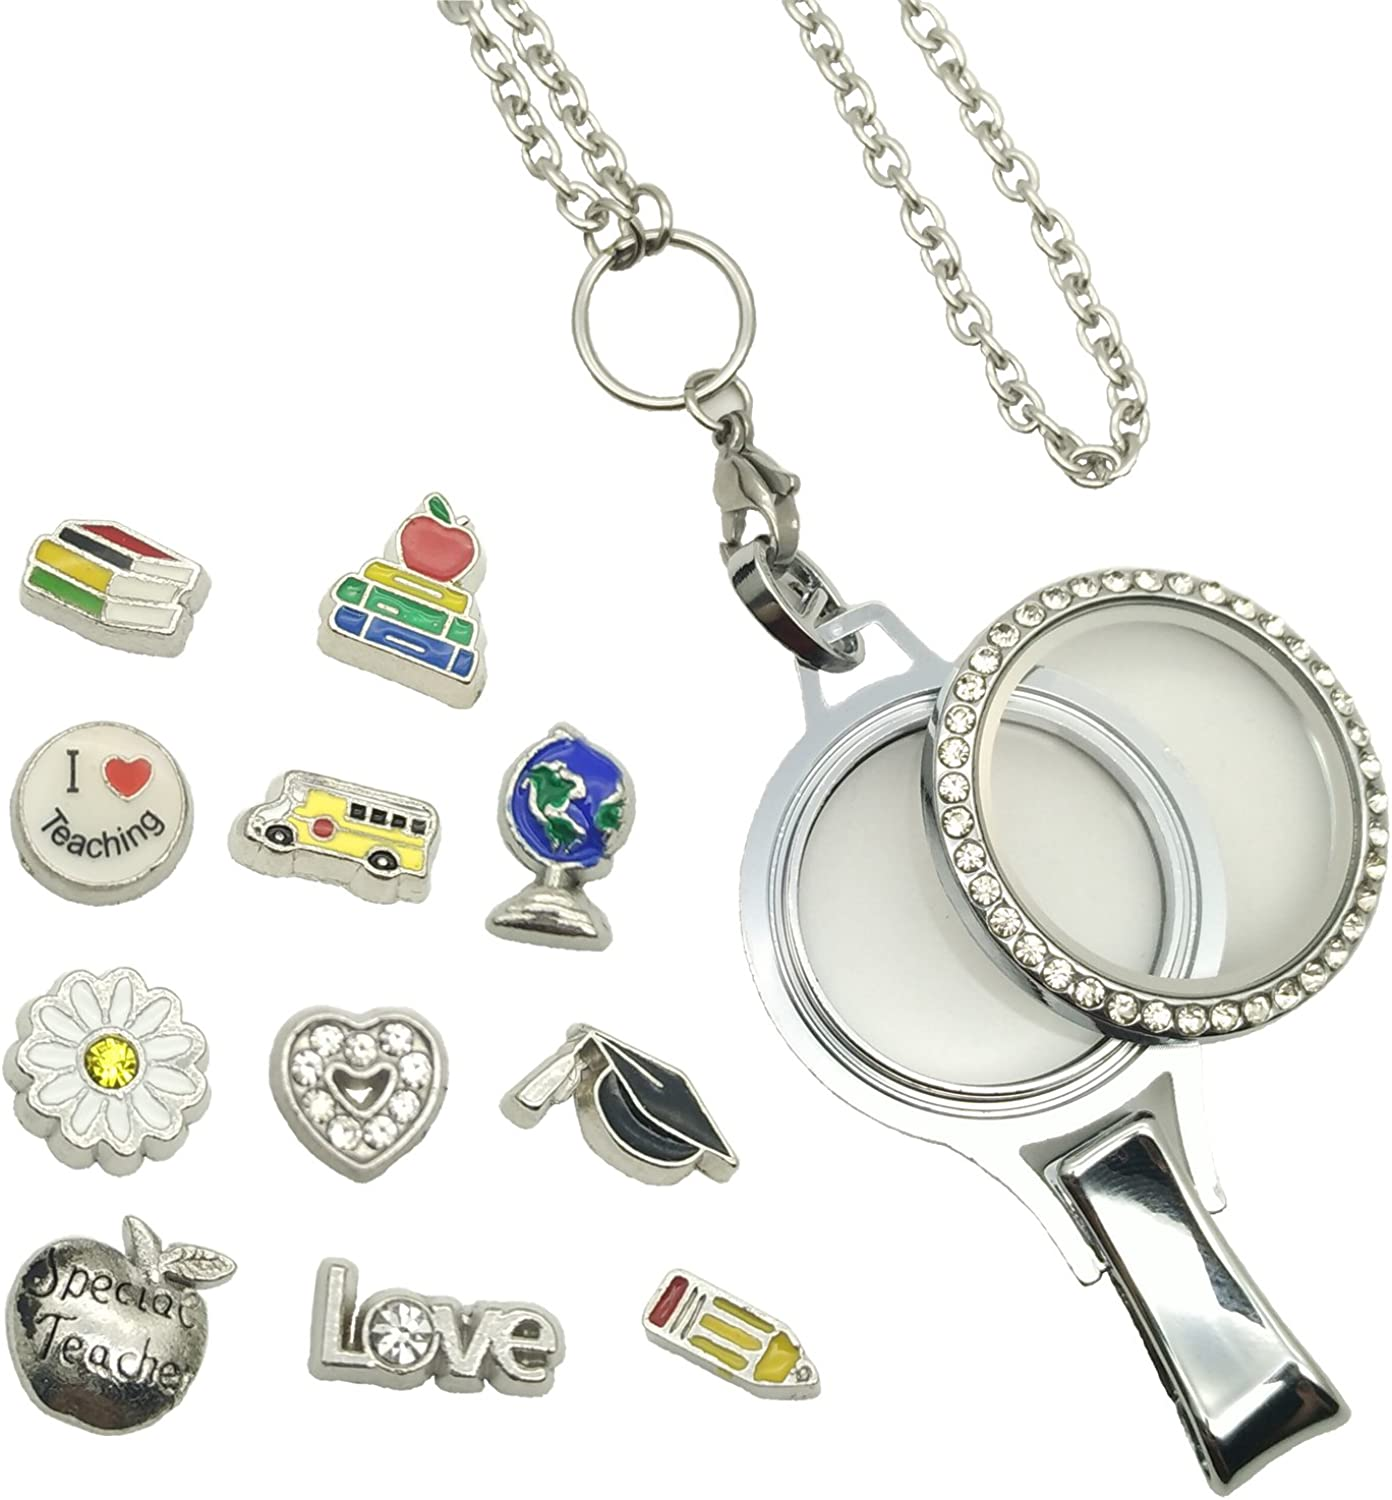 FC LY NP Custom Stainless Steel Lanyard with Floating Charm Locket Badge Reel with Sturdy Screw Top Lid and Key Ring Retractable Heavy Duty Rust and Tarnish Free Chain